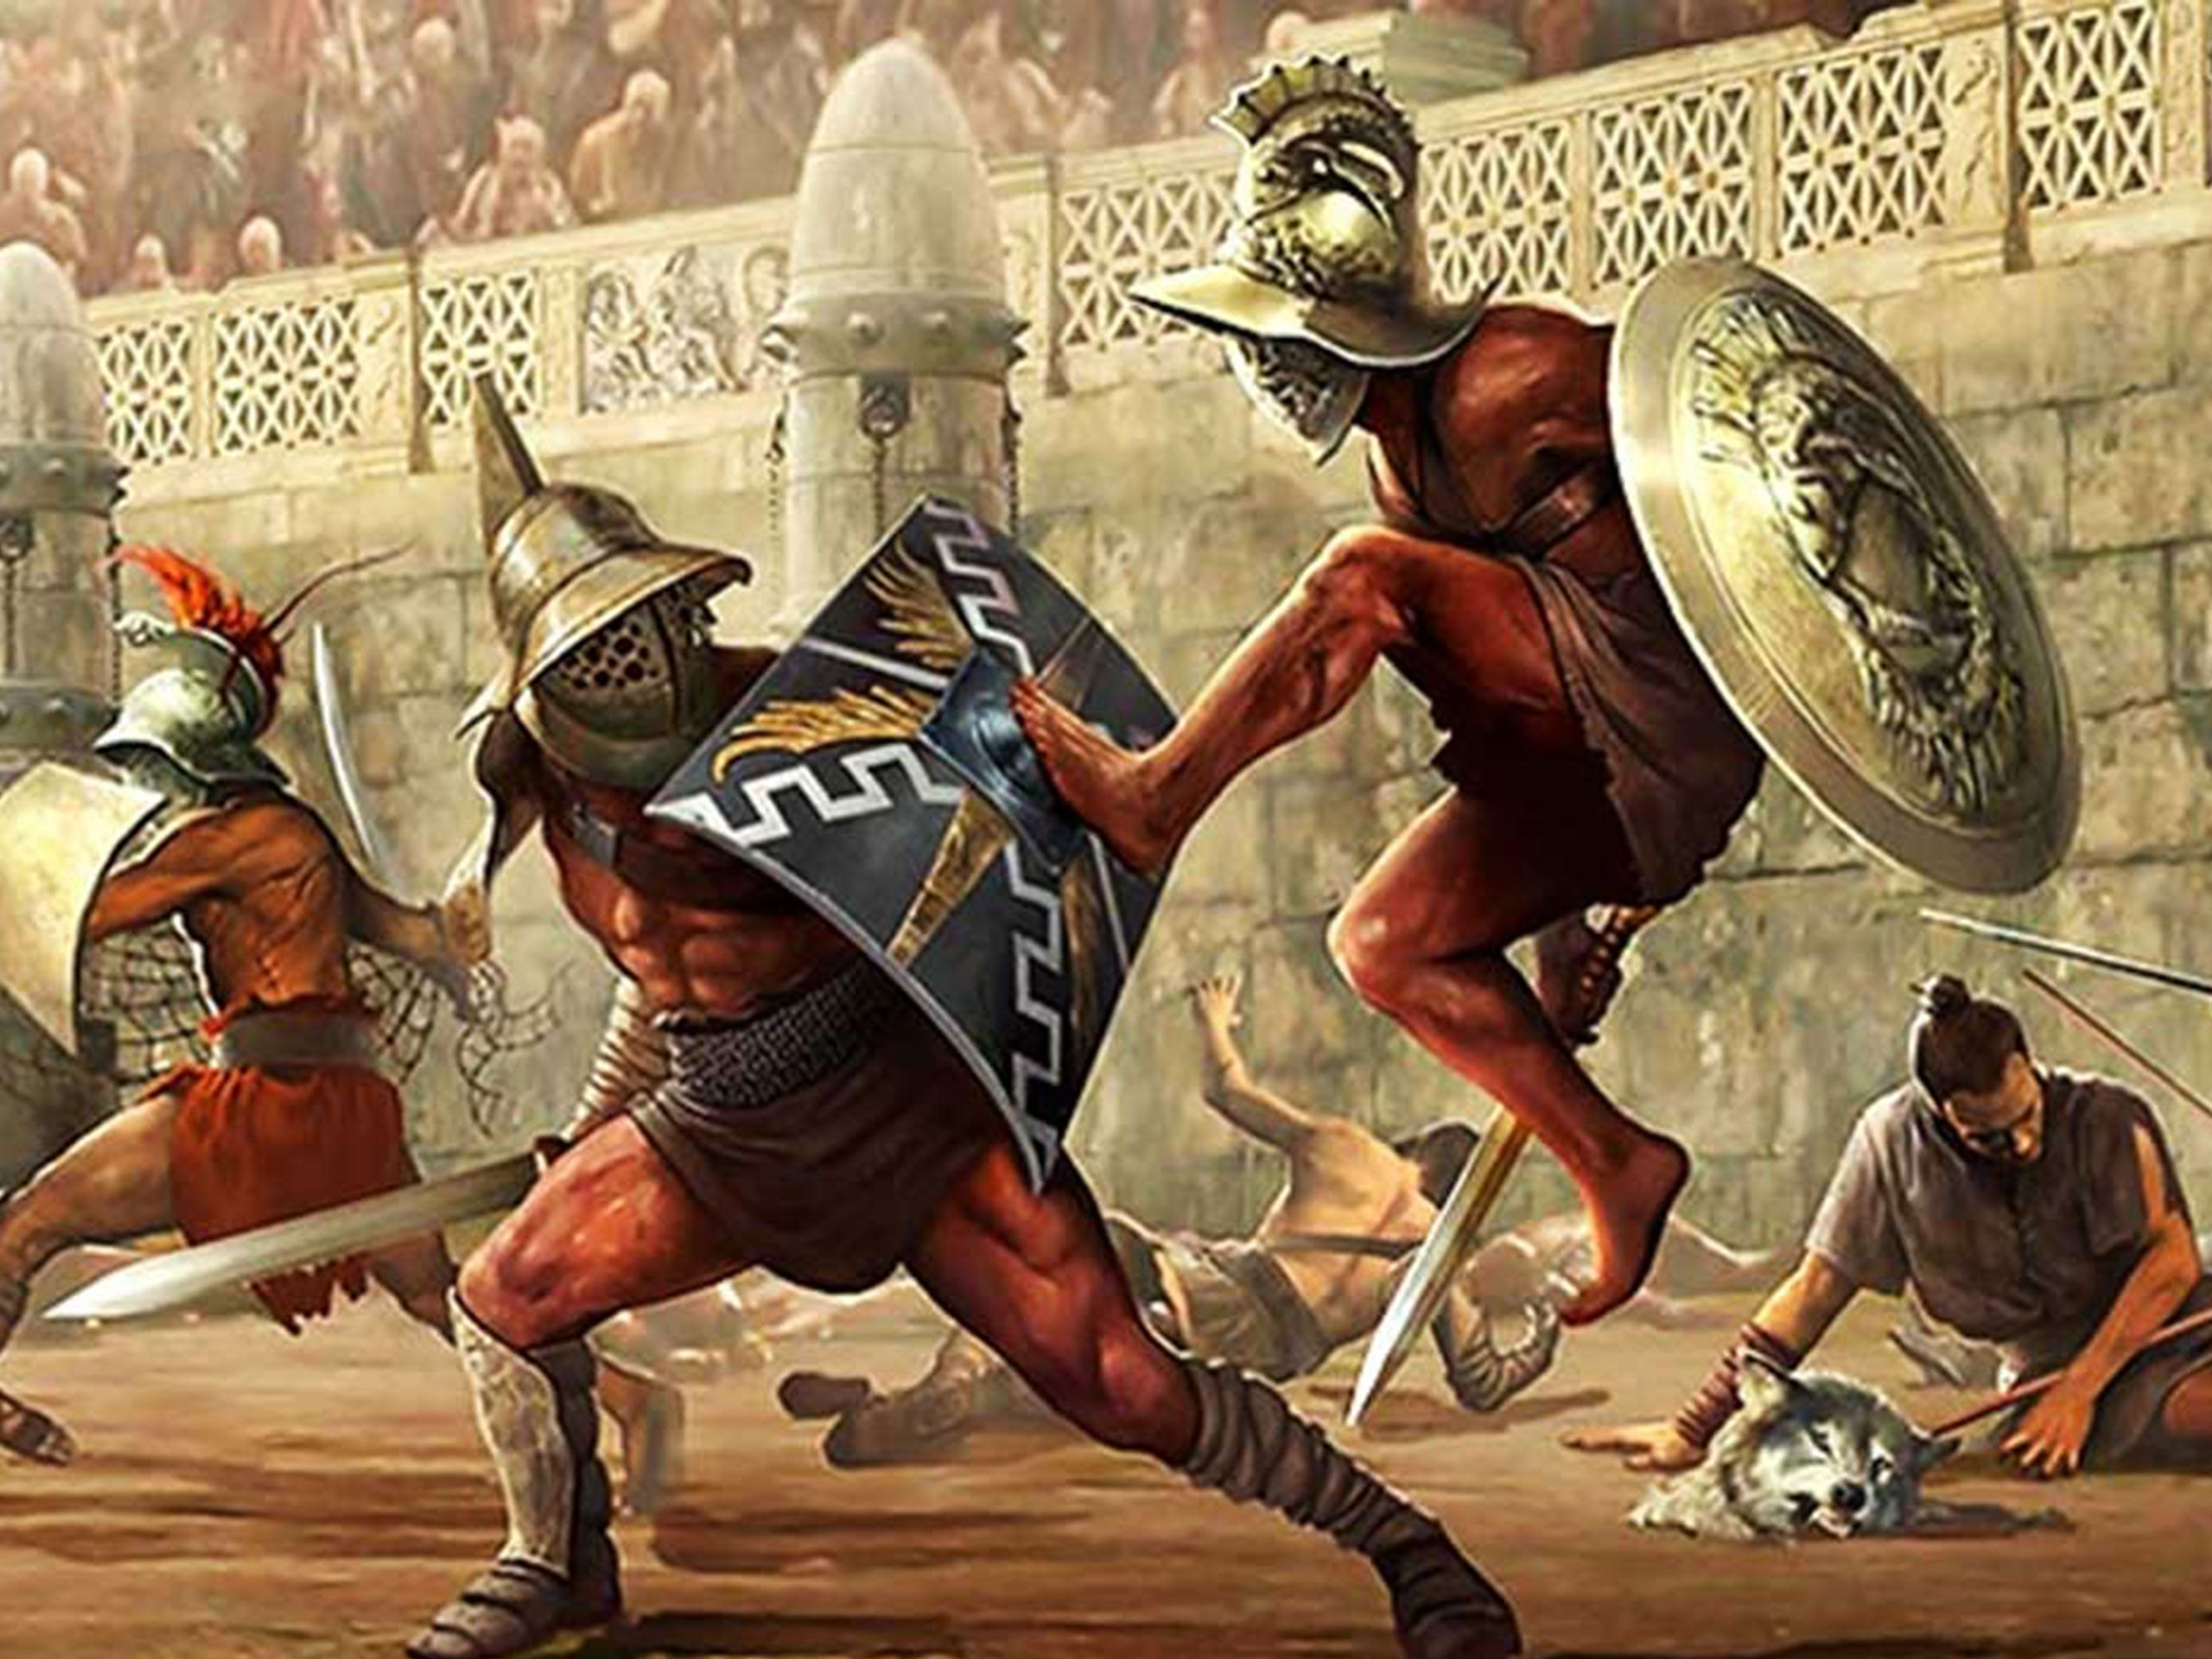 The Blood Lust of Rome